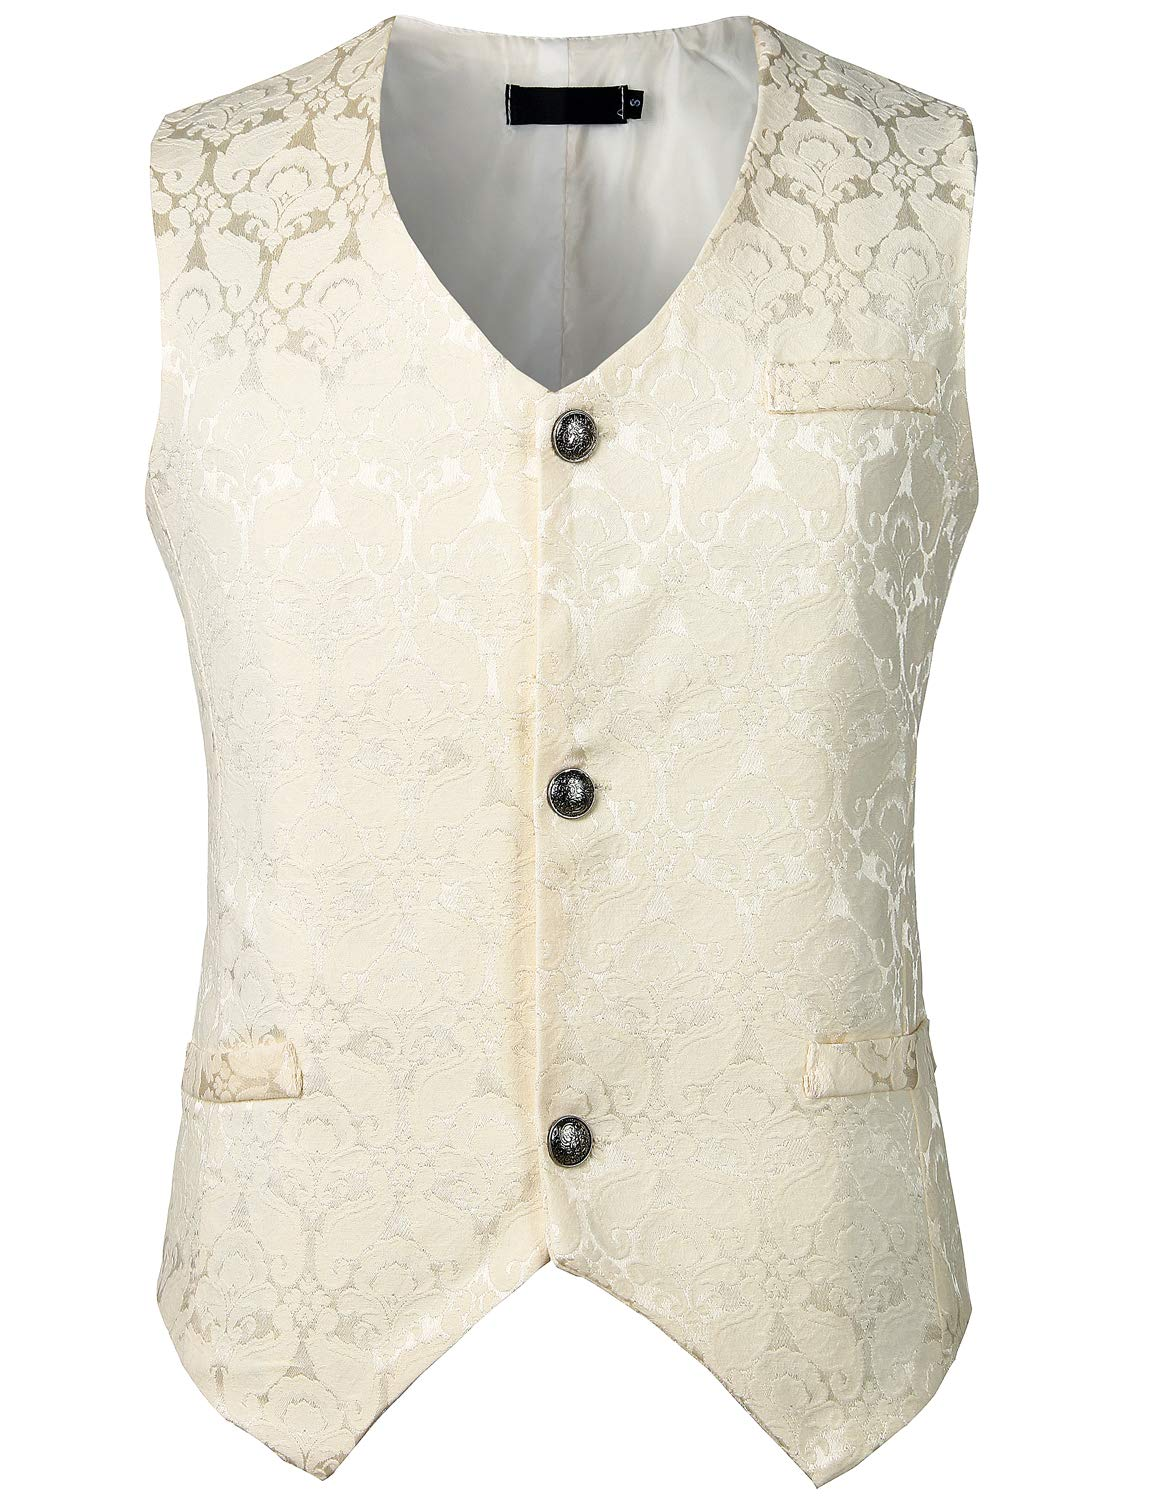 ZEROYAA Mens Single Breasted Vest Gothic Steampunk Victorian Brocade Waistcoat 3